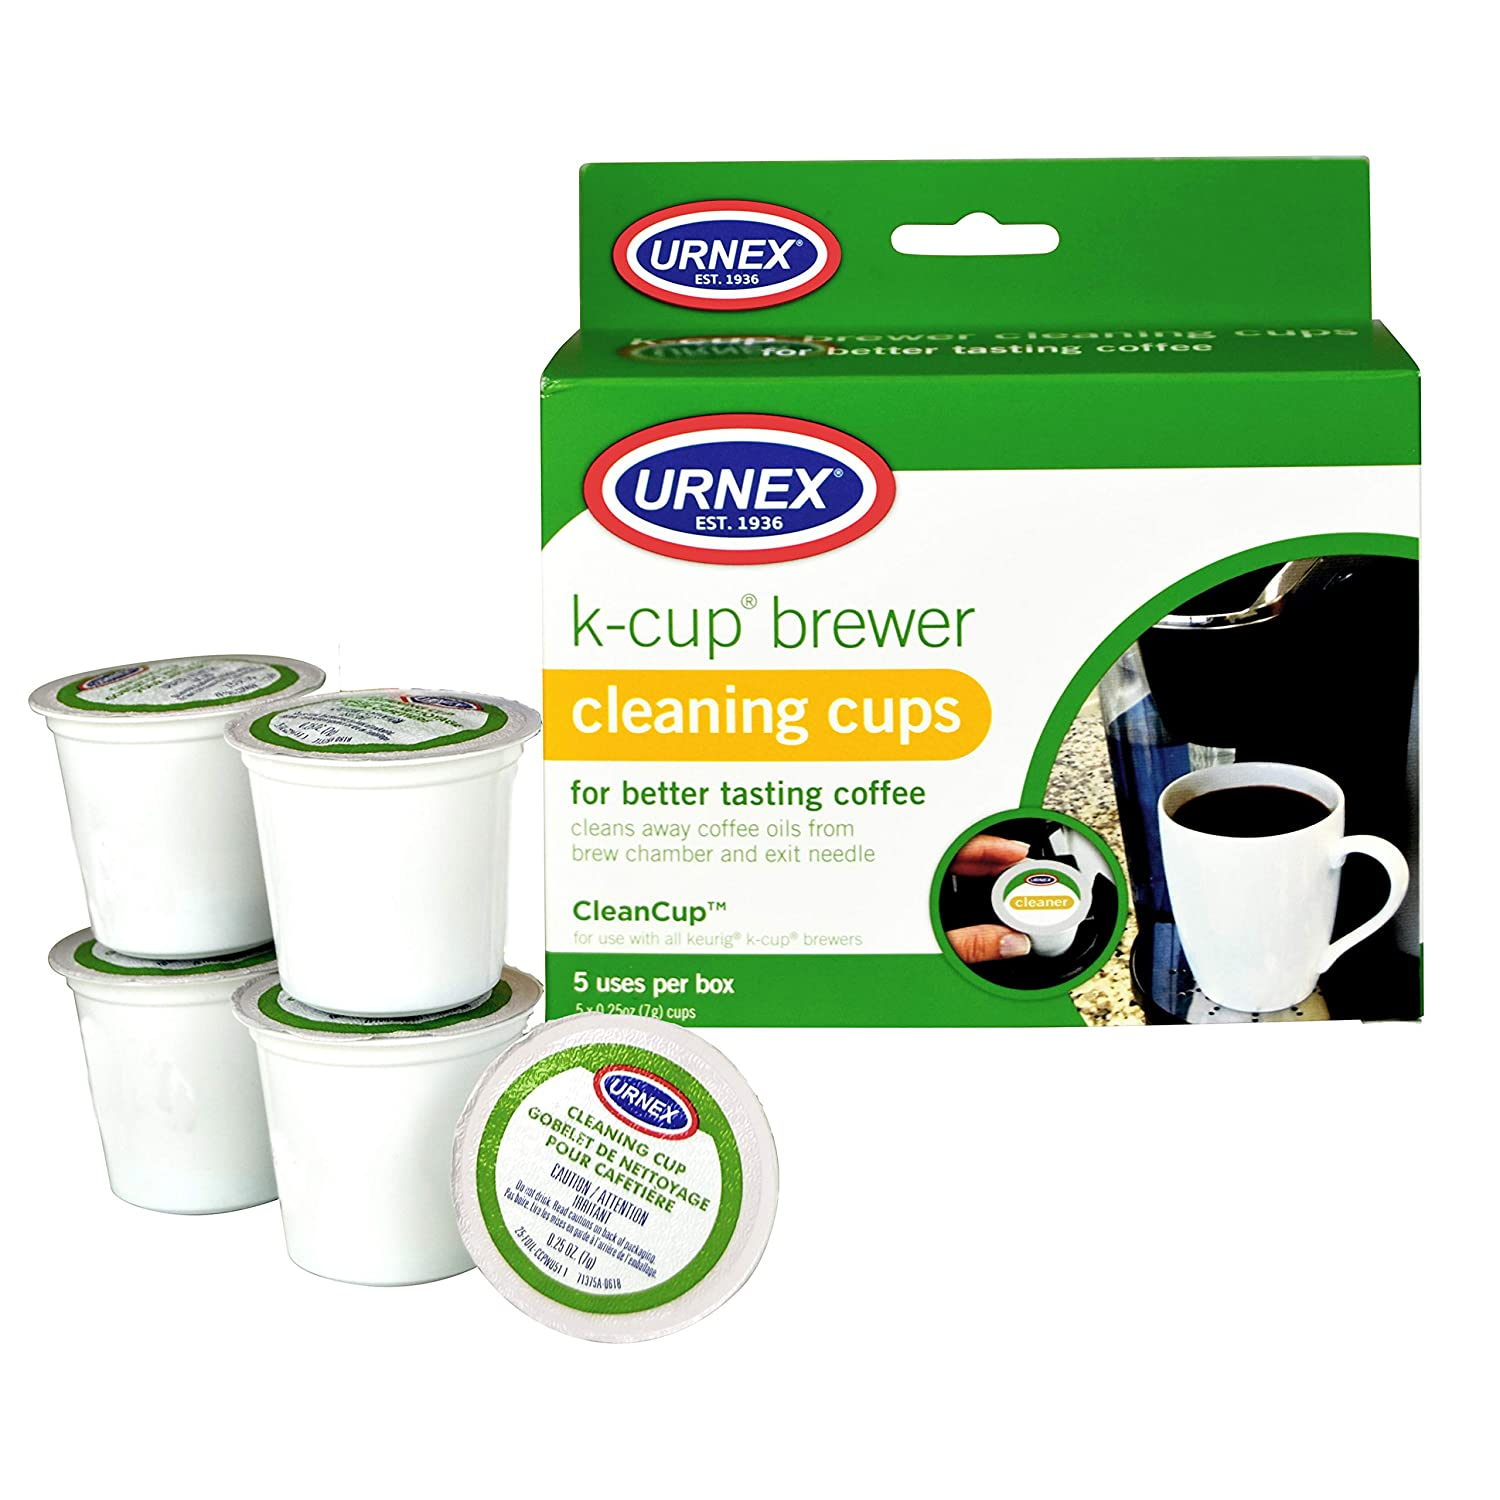 Urnex K-Cup Cleaner - 5 Cleaning Cups - For Keurig Machines Compatible with Keurig 2.0 - Removes Stains Non Toxic